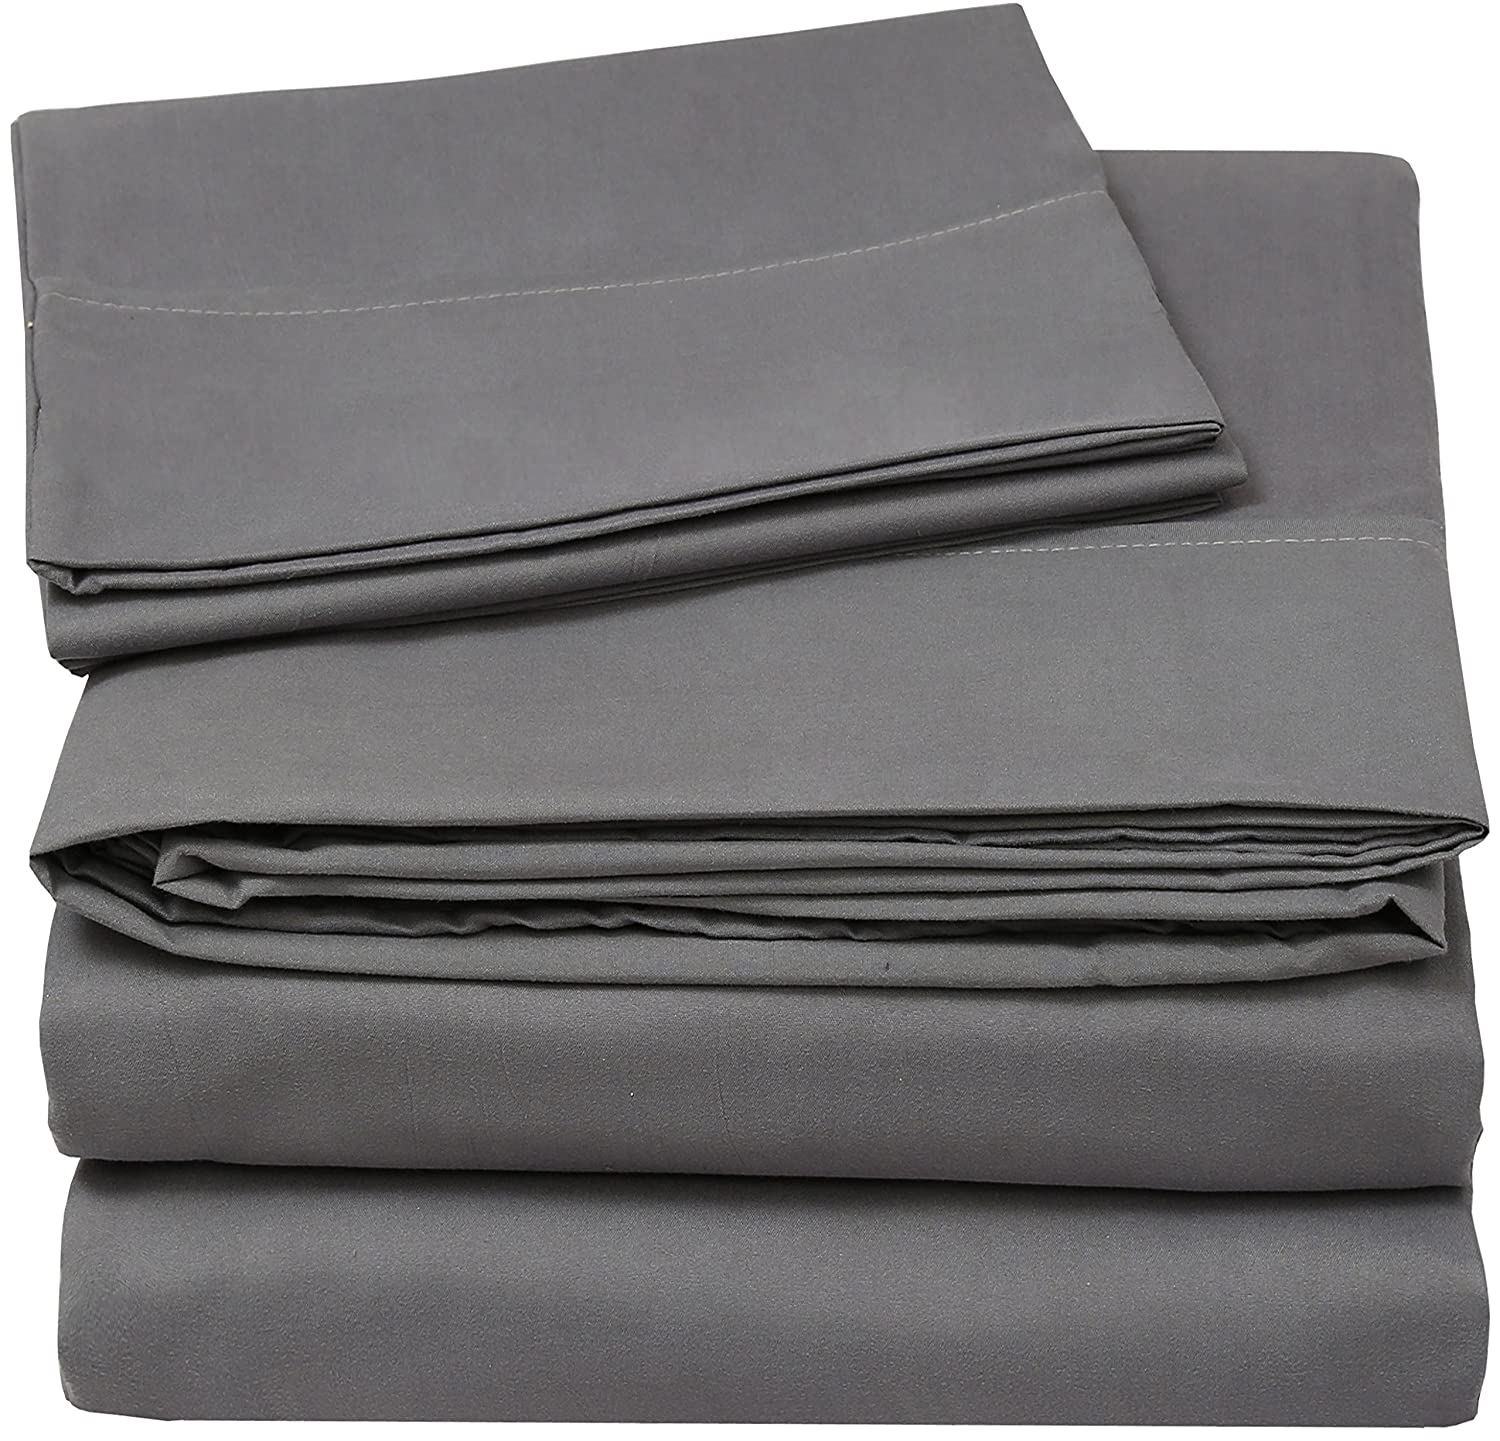 Utopia Bedding Soft Brushed Microfiber Wrinkle Fade and Stain Resistant 3-Piece Sheet Set - Grey